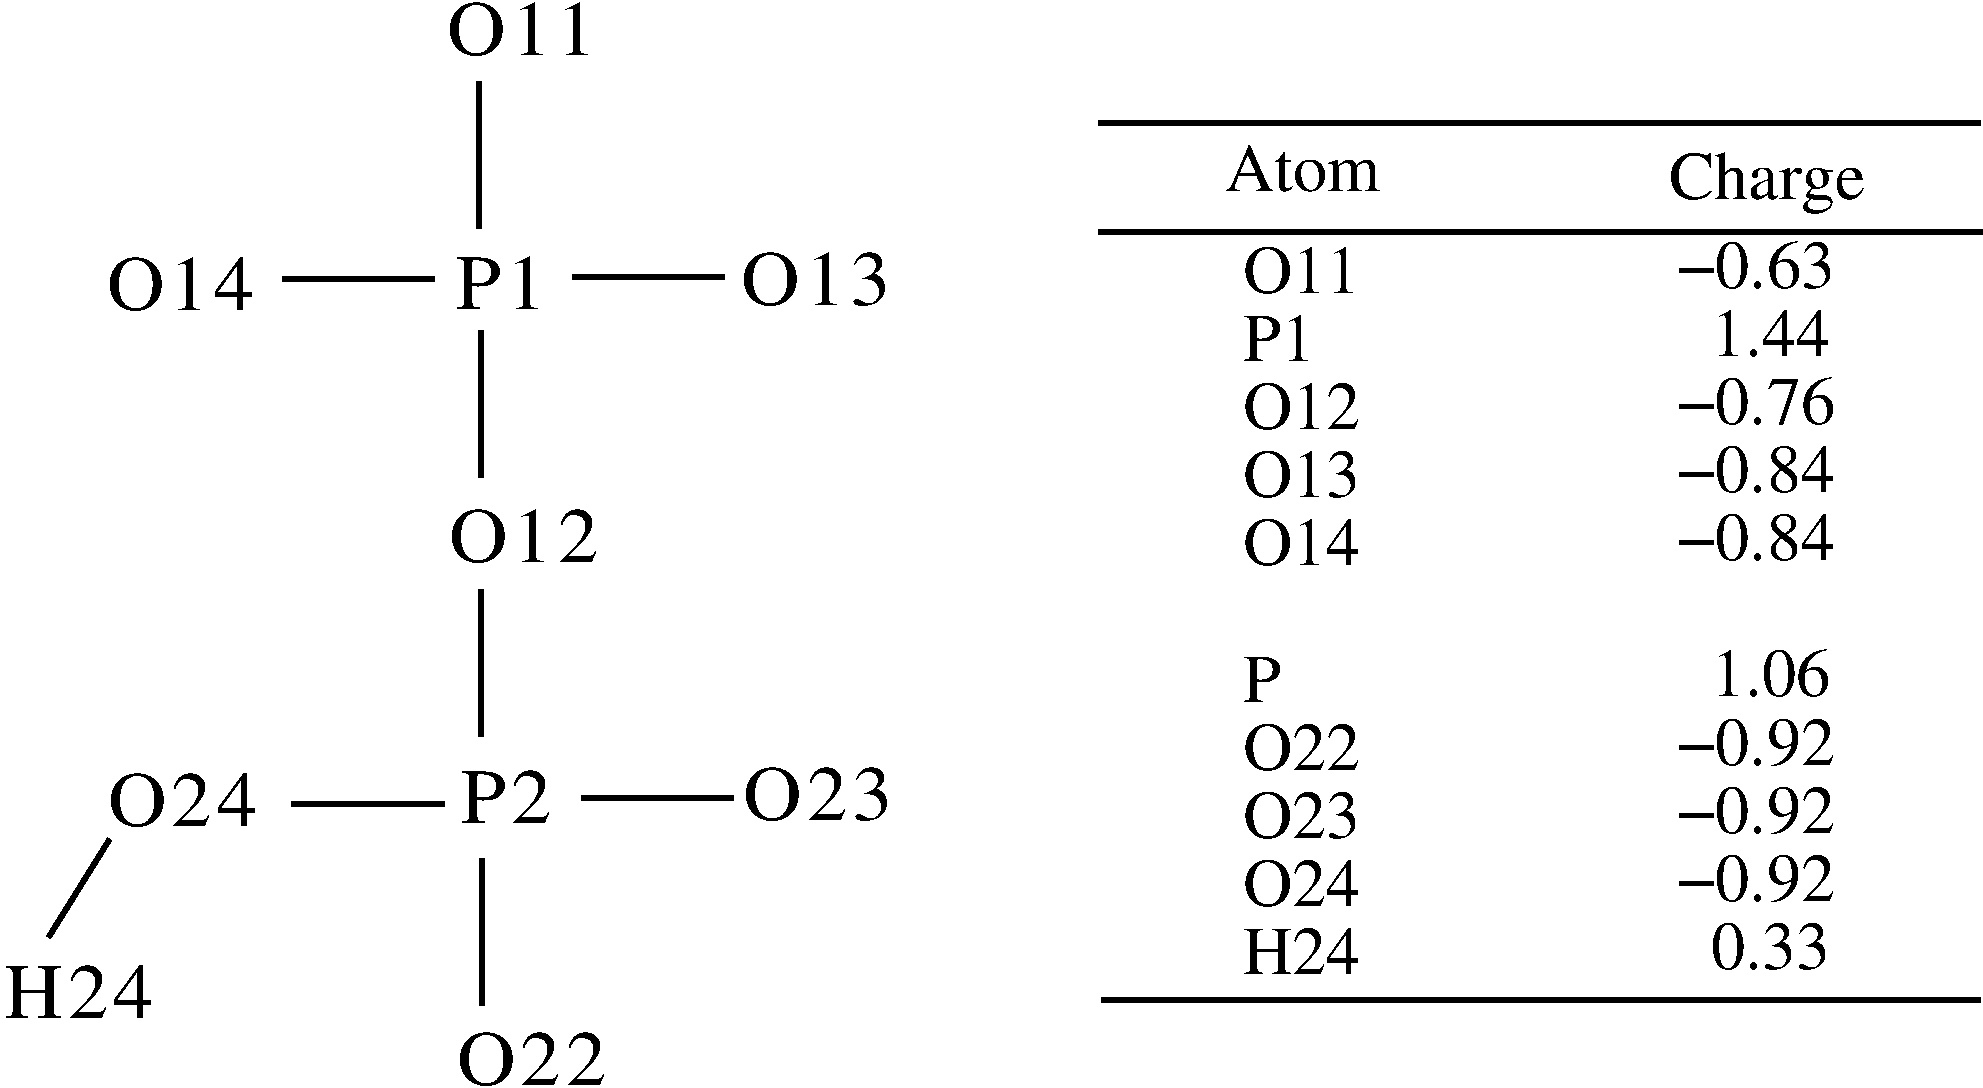 Polymerase Simulations Suggest That Arg258 Rotation Is A Slow Step Way Switch Diagram Light Between Switches 2 Pdf 68kb Download Image 136kbhelp